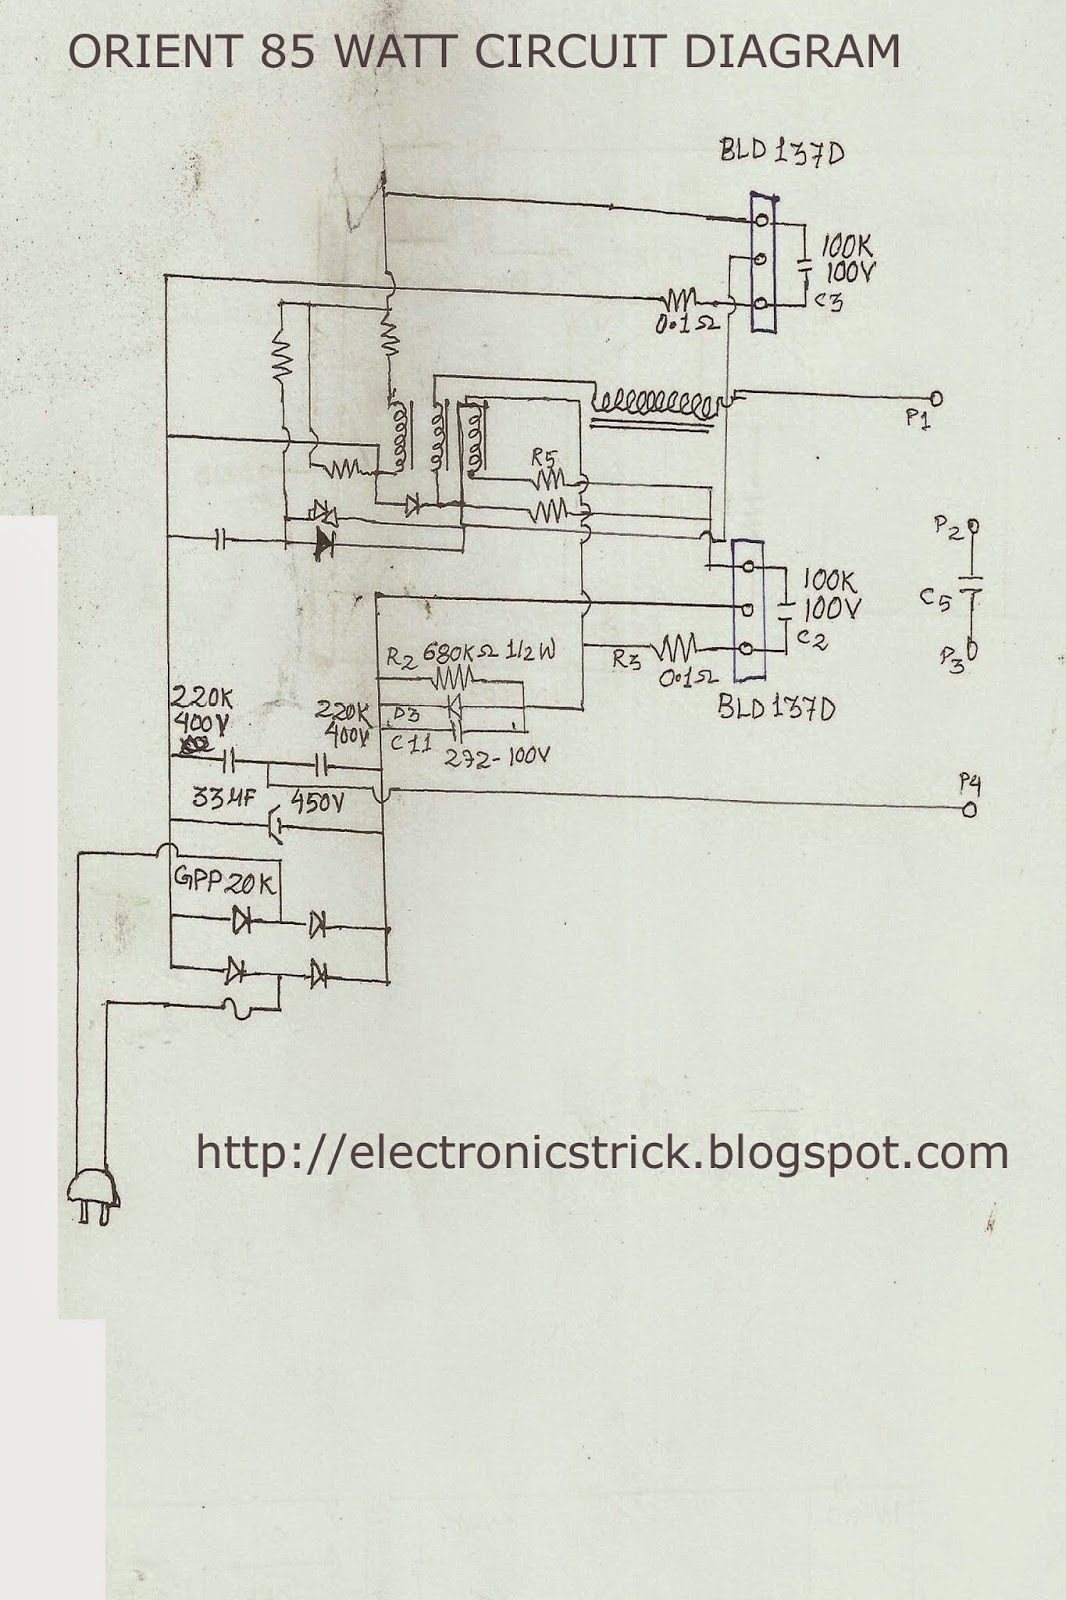 4 pin cfl wiring diagram waterway executive spa pump orient 85 watt bulb circuit tips and trick